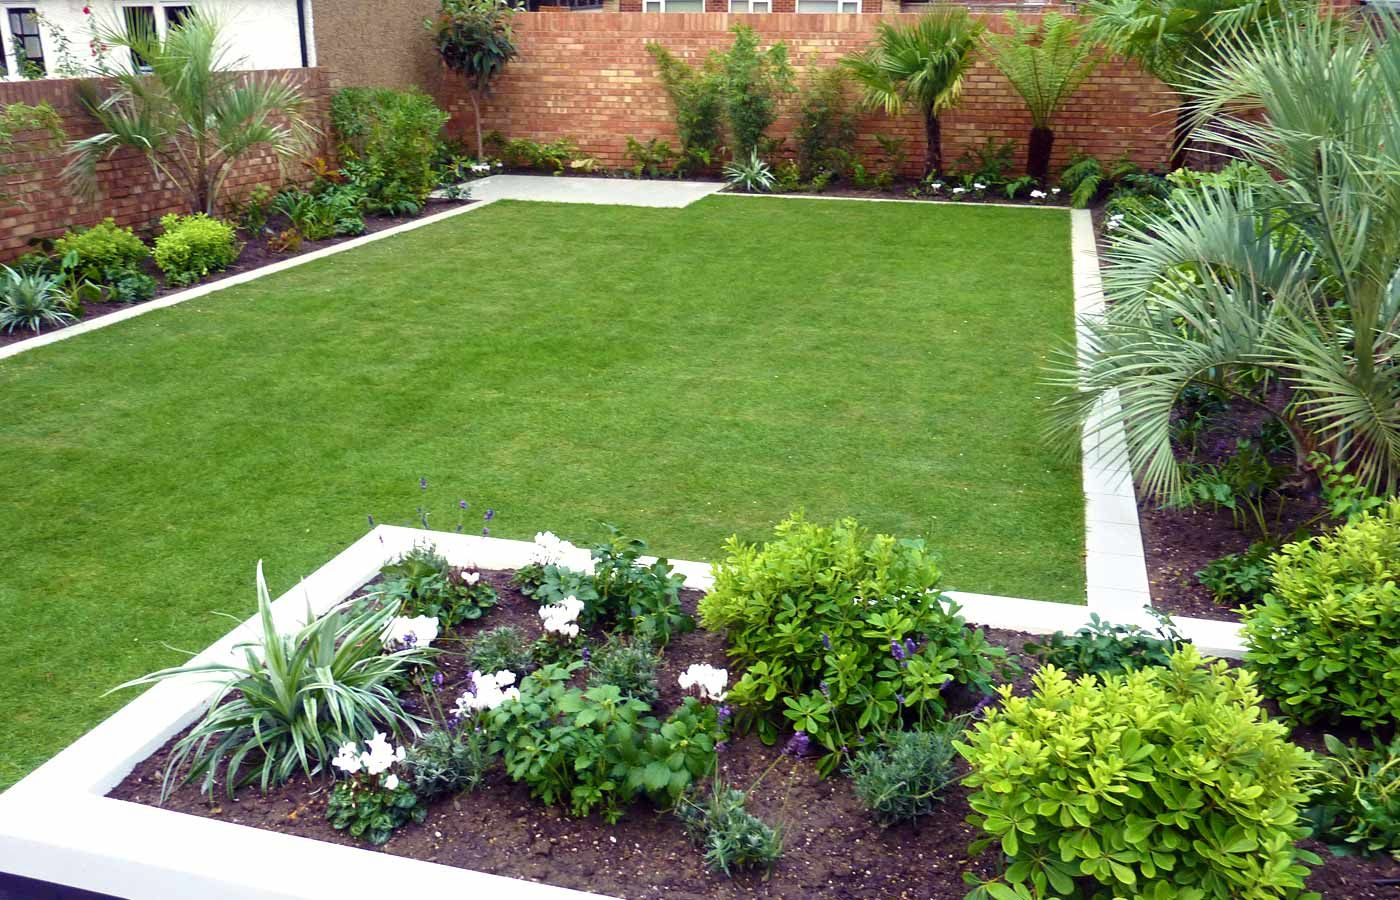 garden design garden design ideas simple garden ideas simple garden